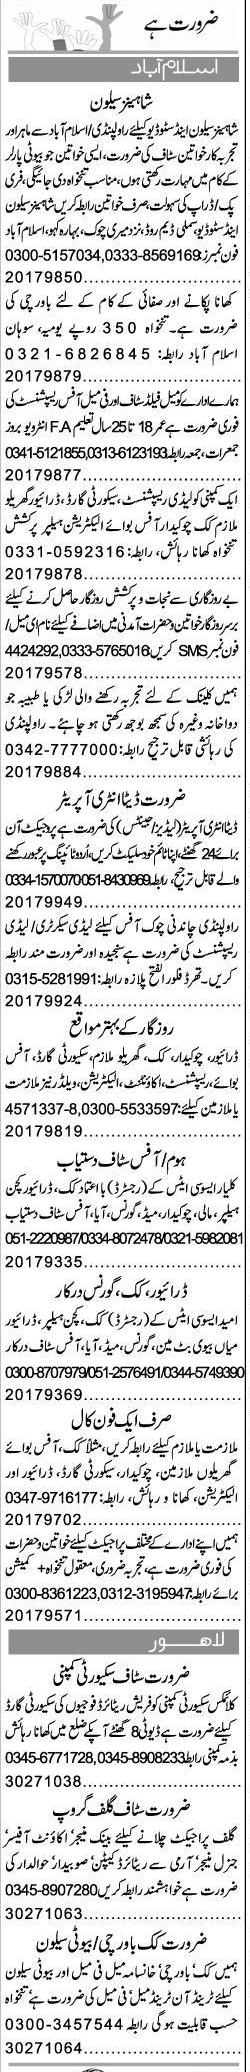 Misc. Jobs in Islamabad Express Classified